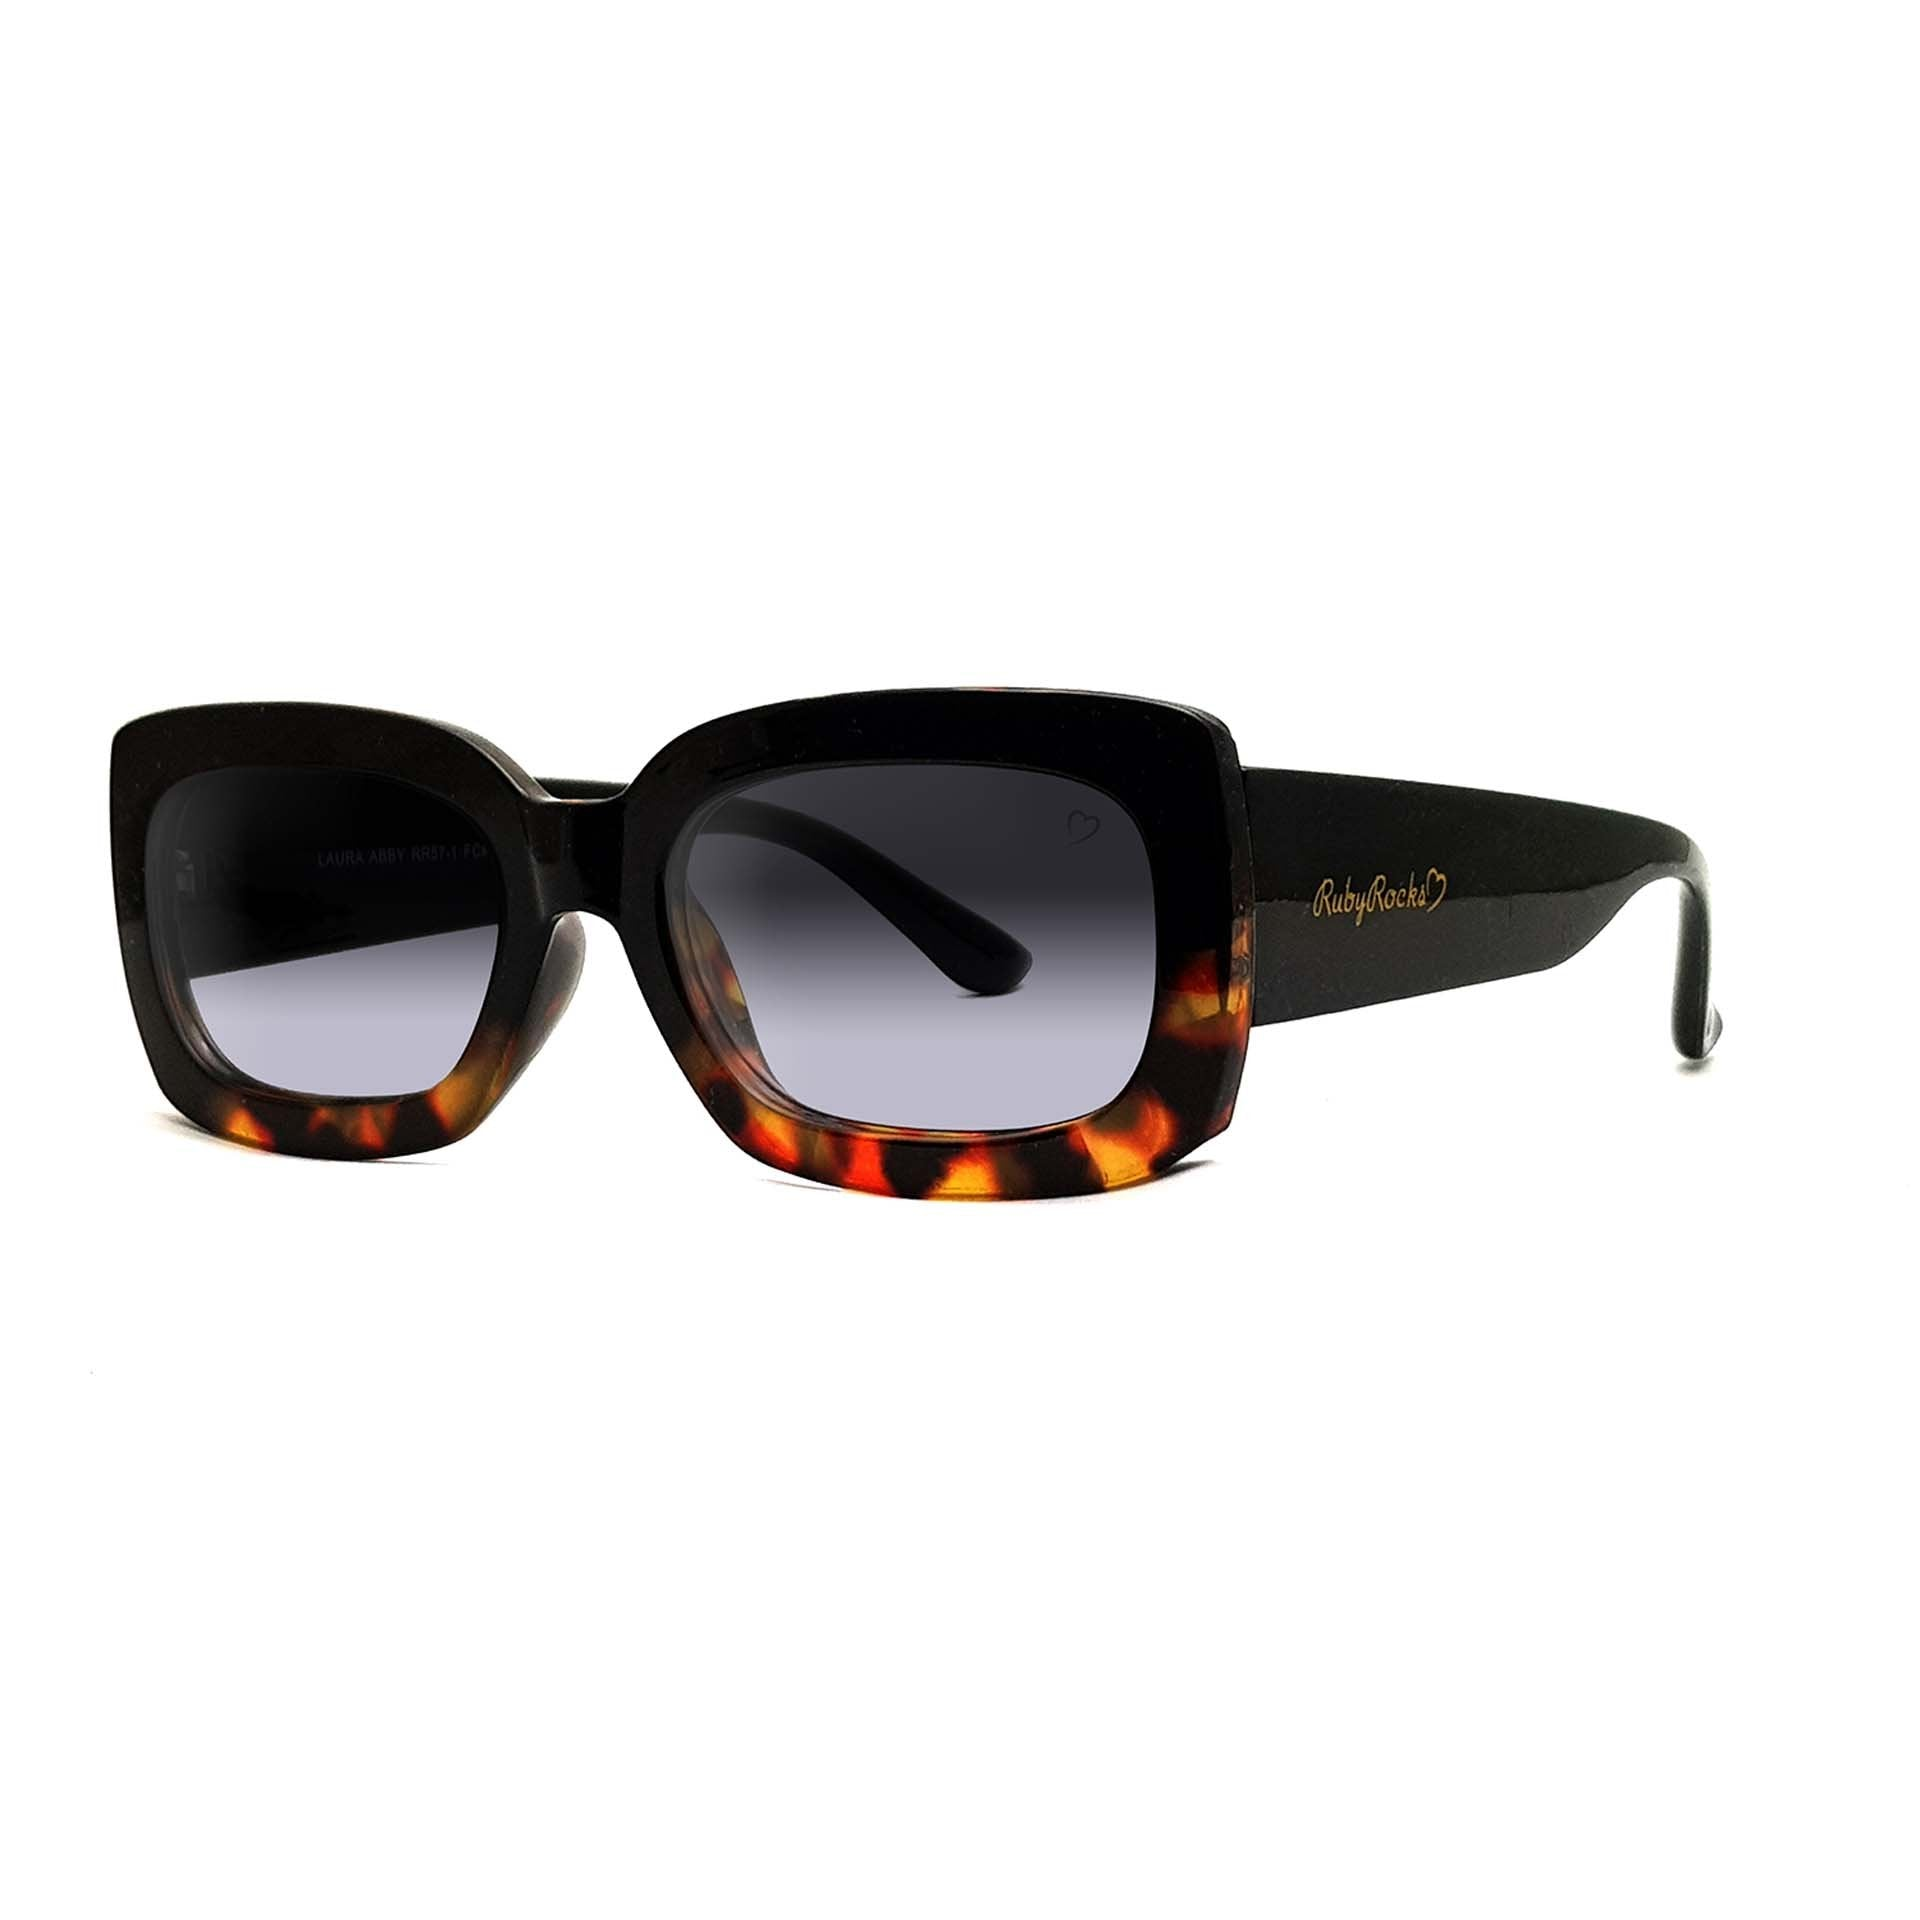 'Laura Abby' Sunglasses In Black & Tort